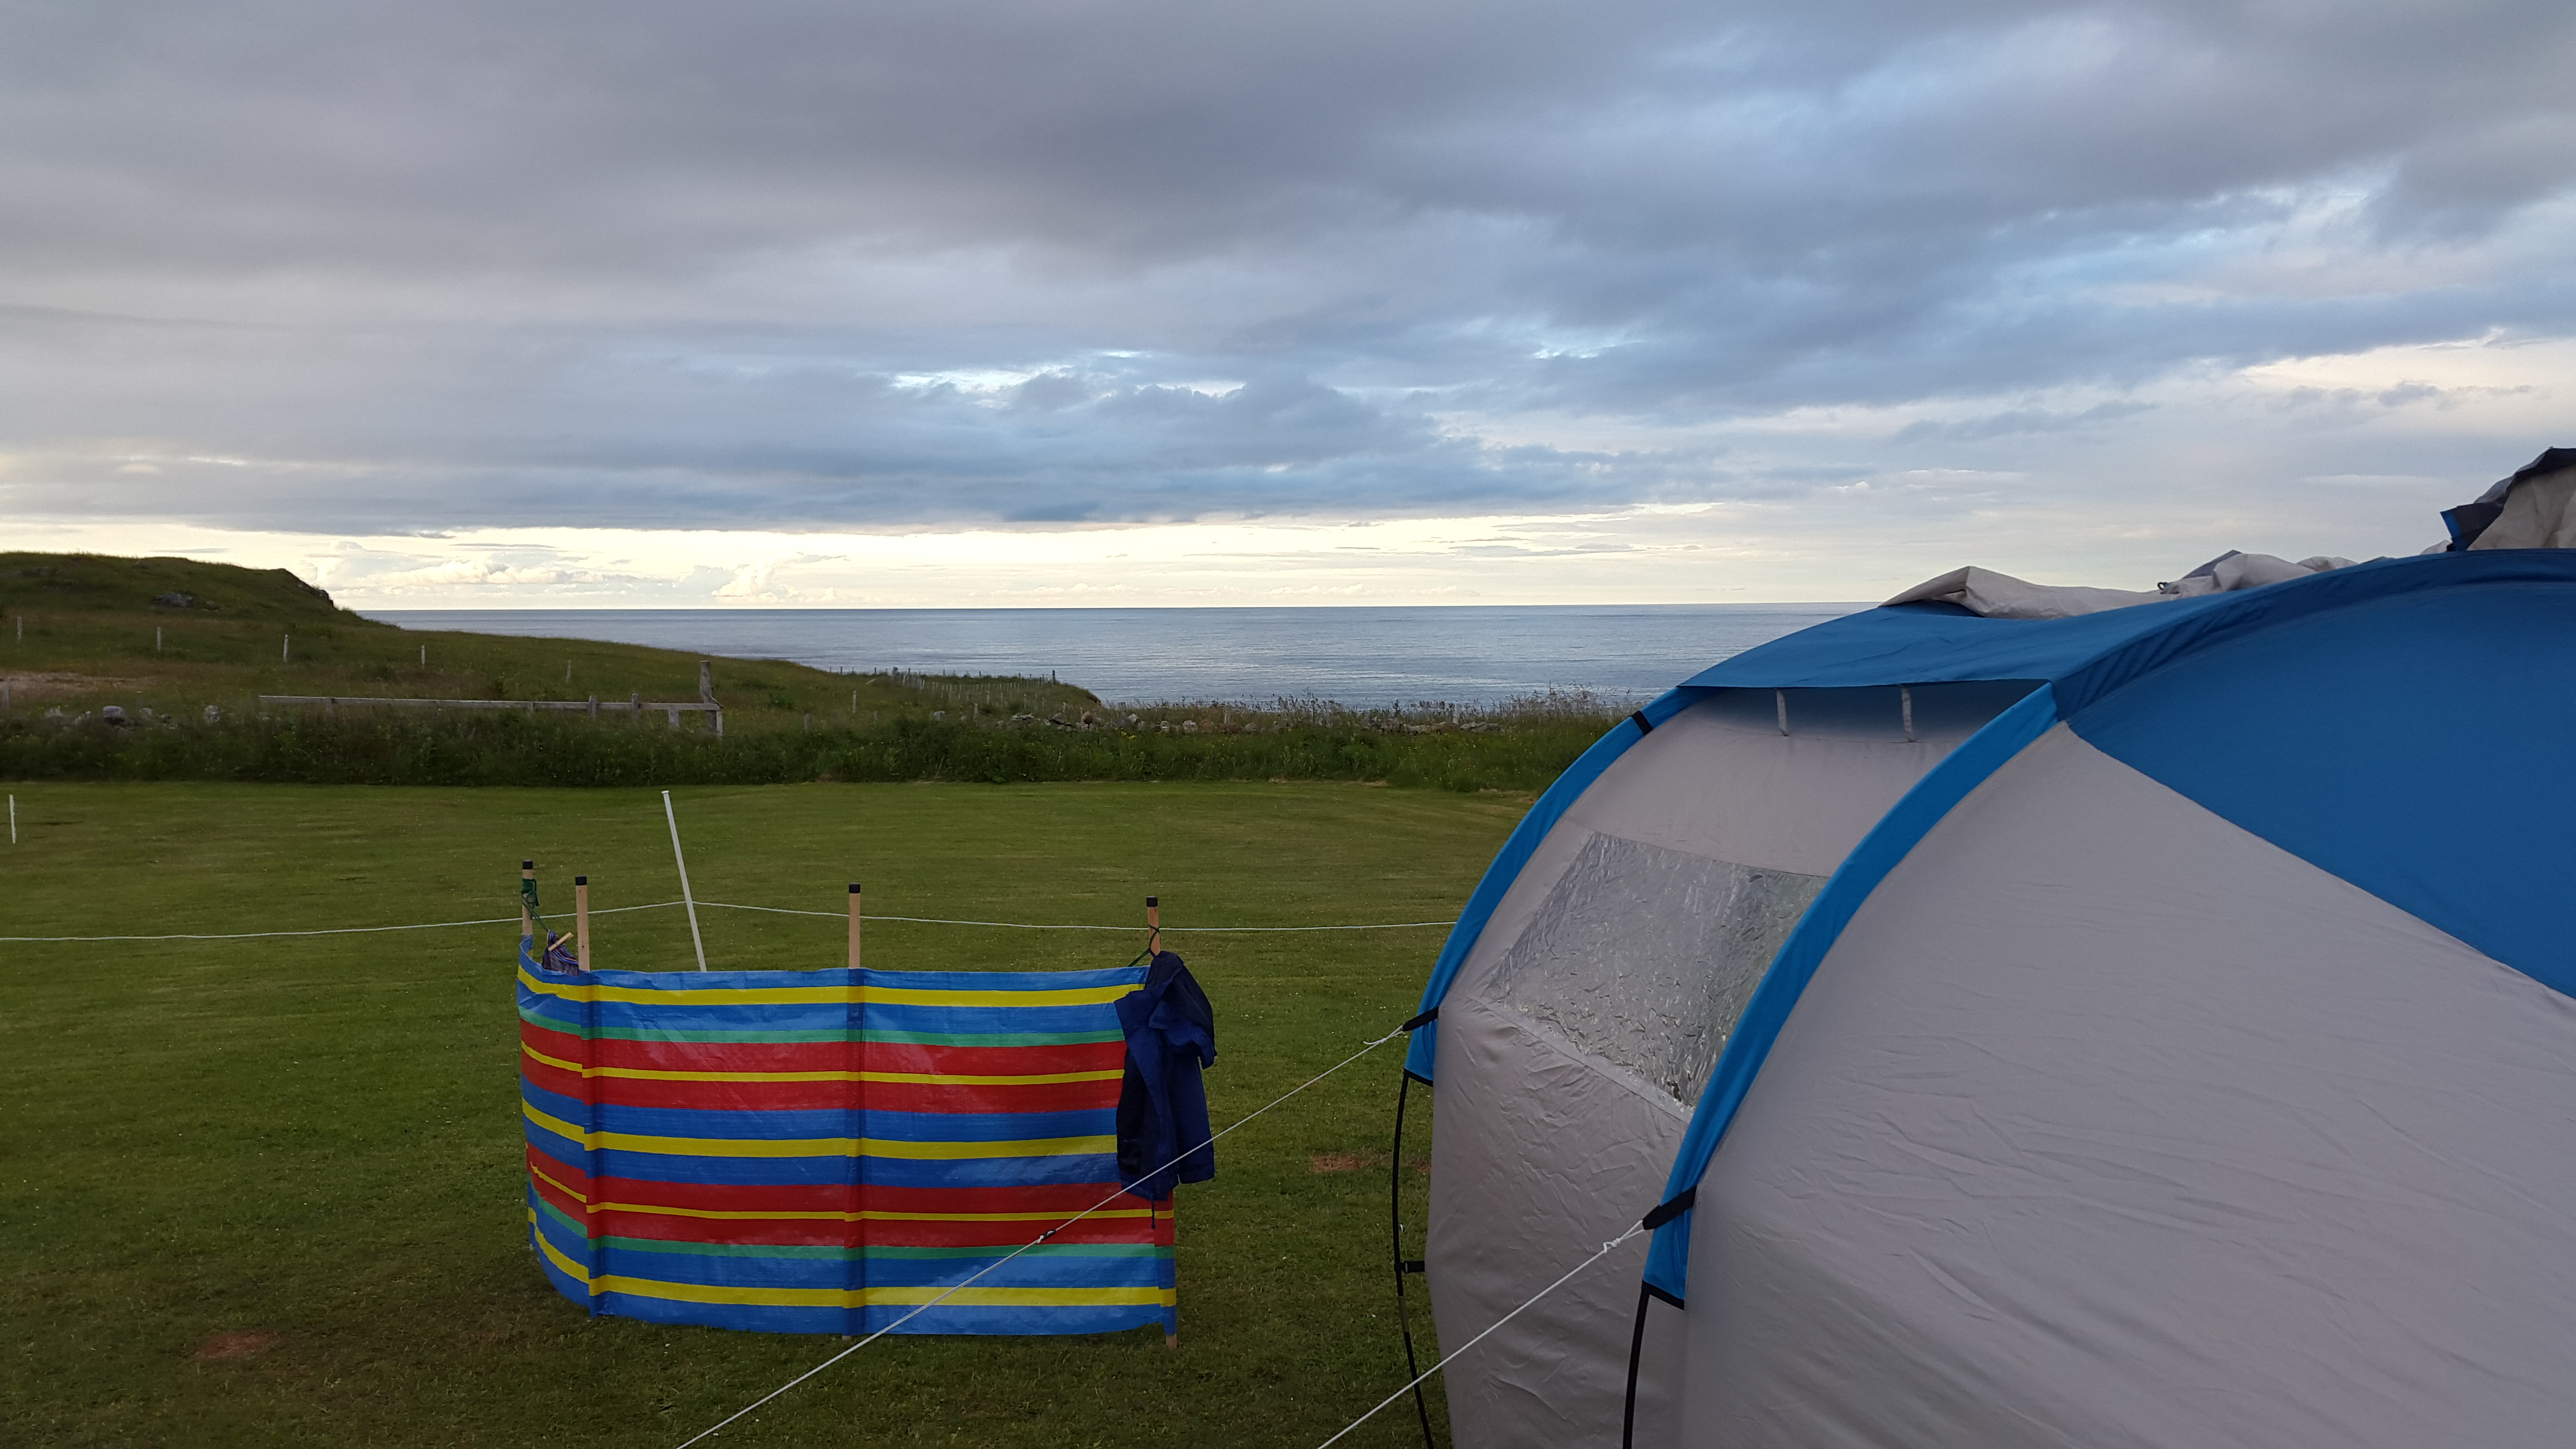 Decathlon Quechua Arpenaz Family 4.1 tent withstanding the winds on a trip to Durness, Sutherland.